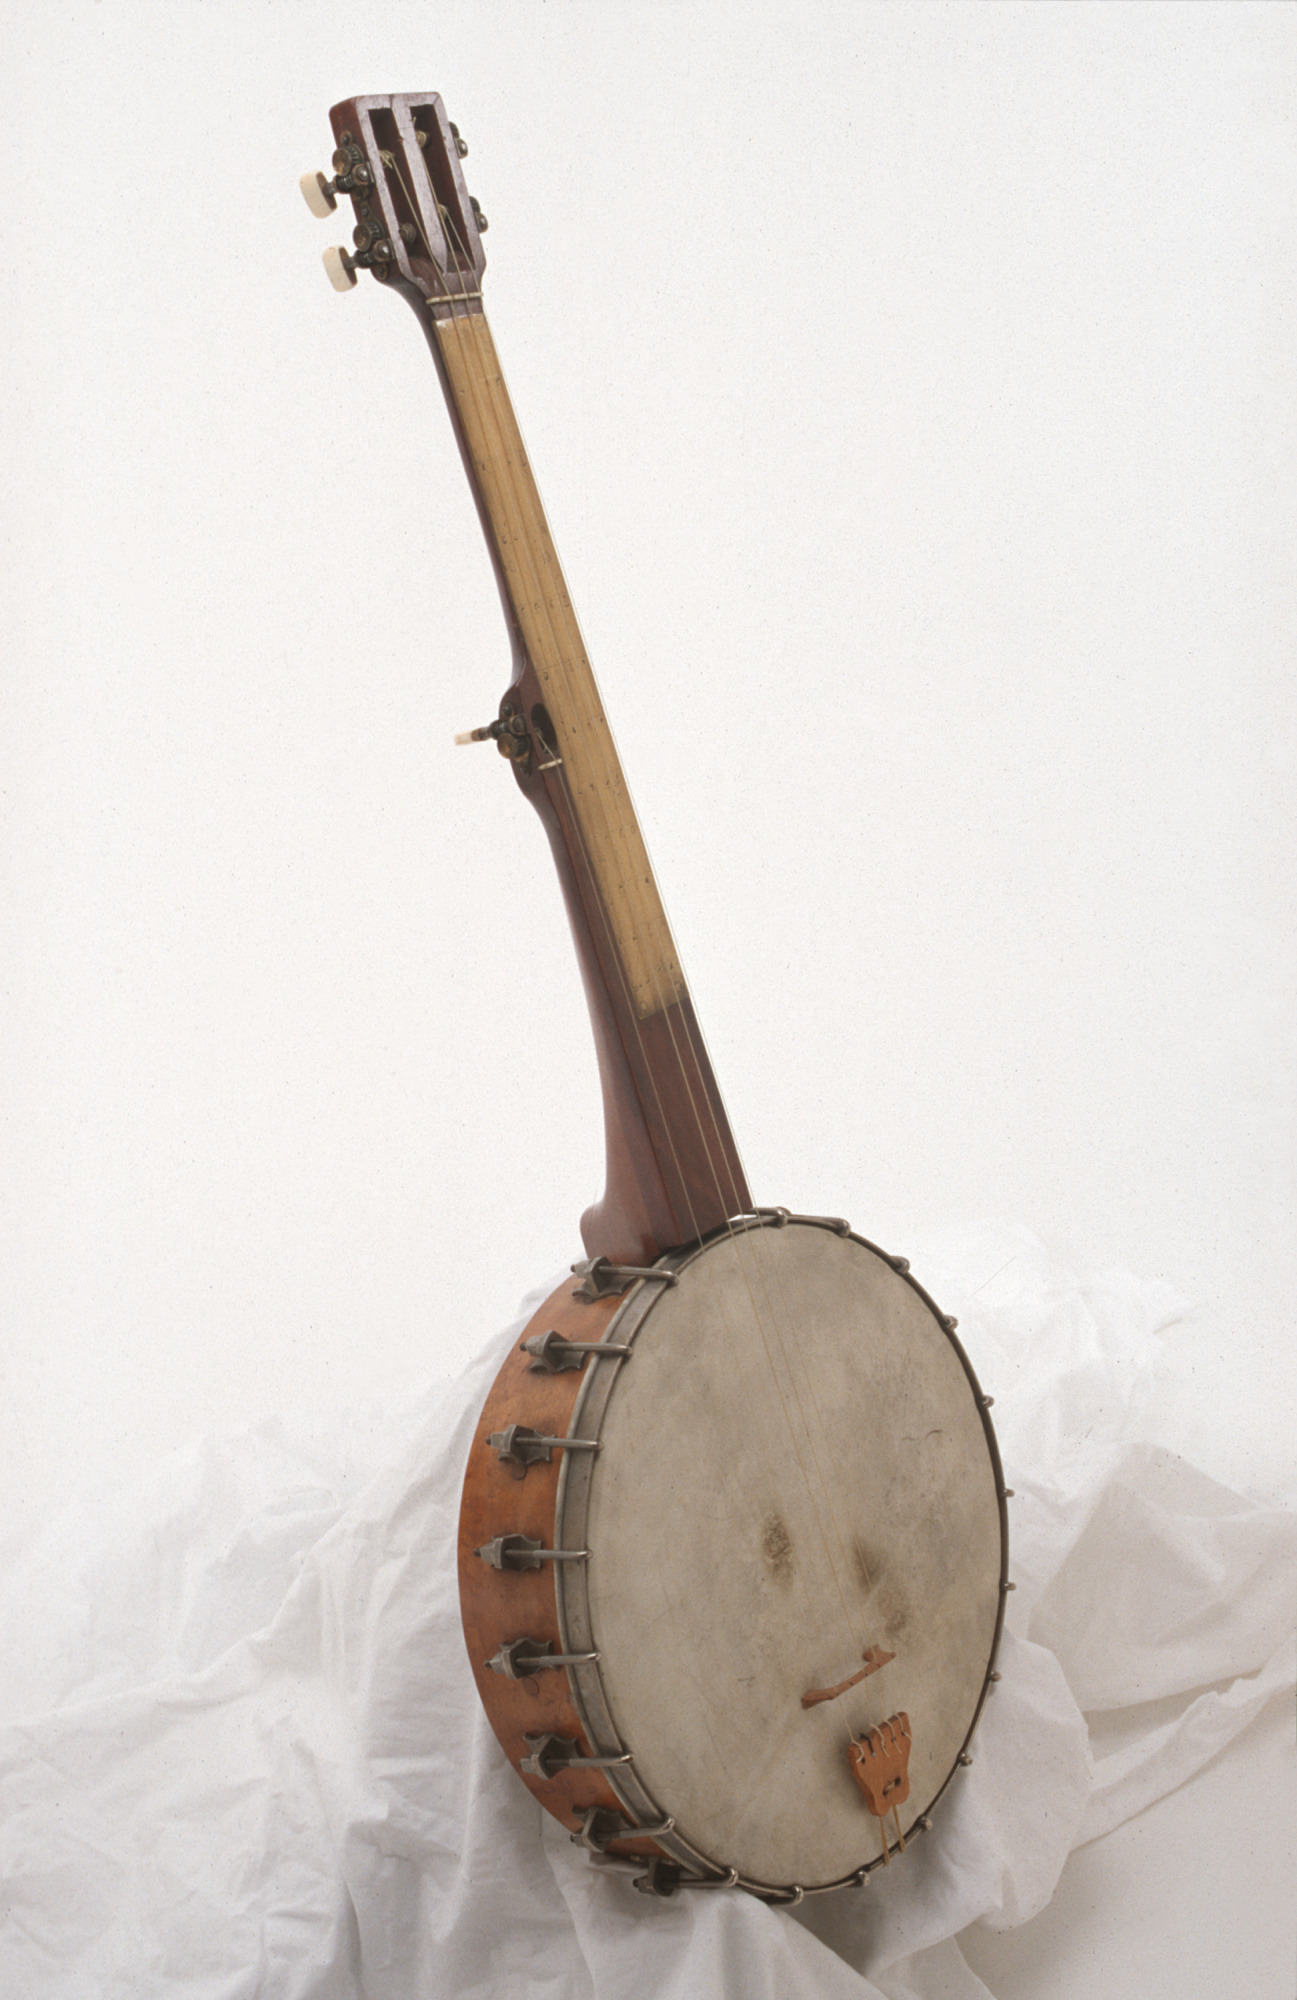 Image 1 for Mather Five-String Fretless Banjo